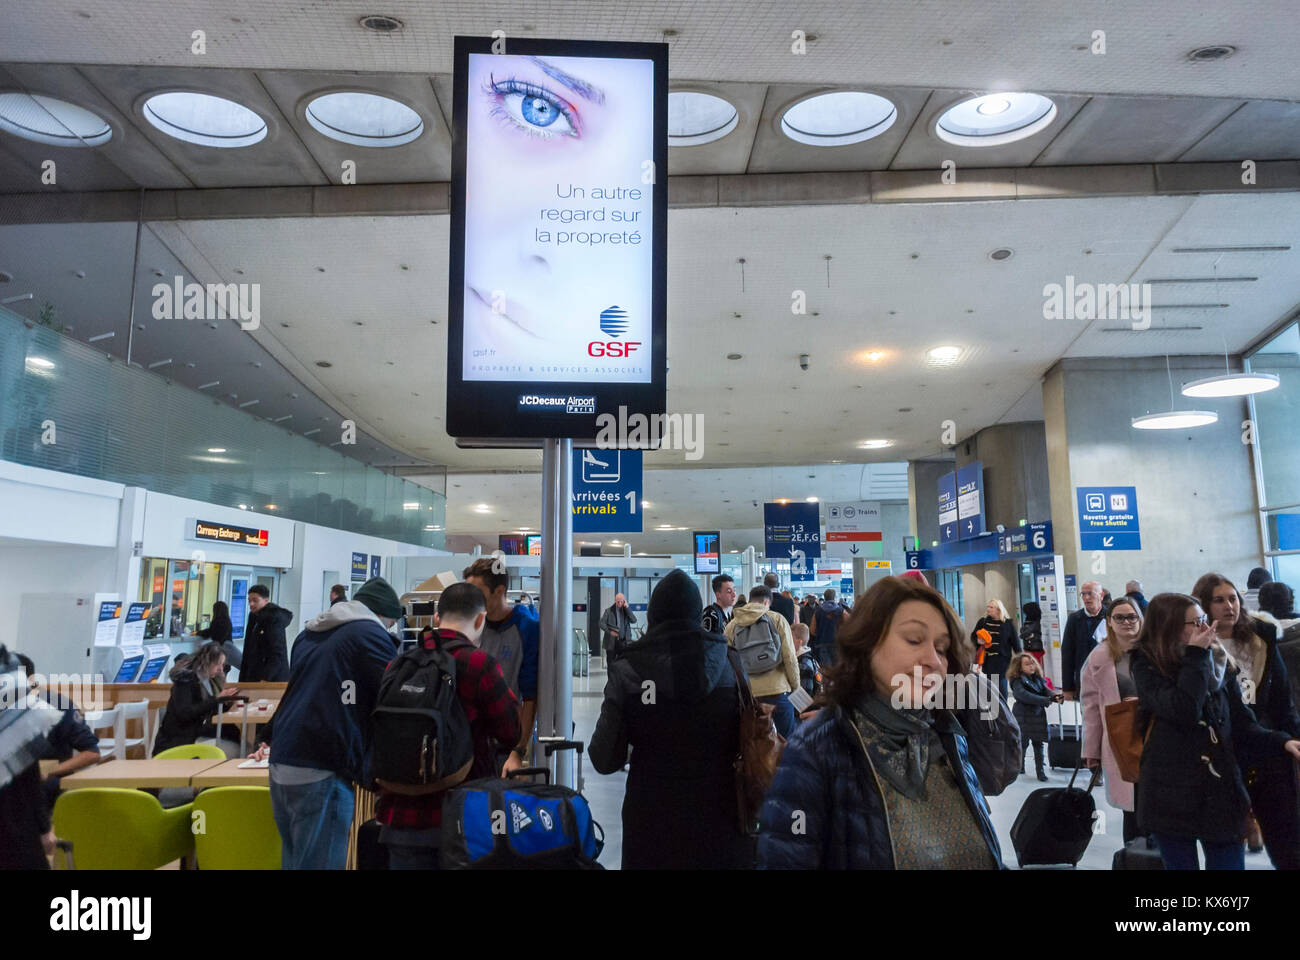 Nice, France, French Advertising on Electronic Board in Lounge inside Airport Terminal (JC Decaux) - Stock Image